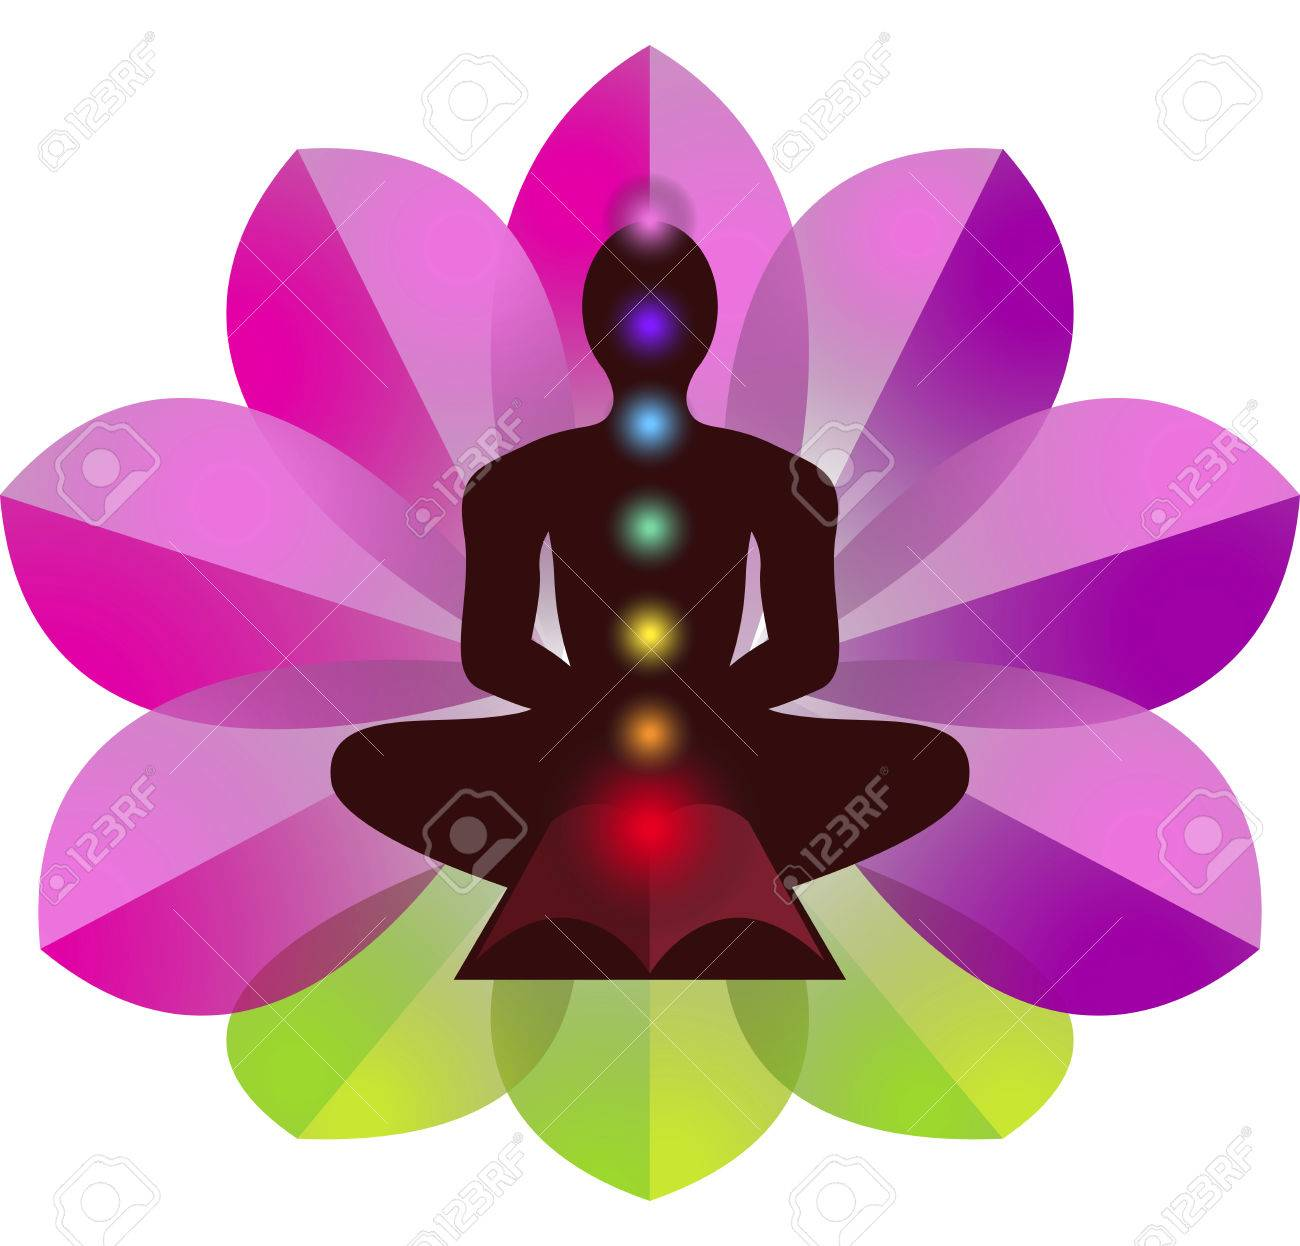 Illustration Art Of A Lotus Yoga With Isolated Background Stock Photo Picture And Royalty Free Image Image 31390359